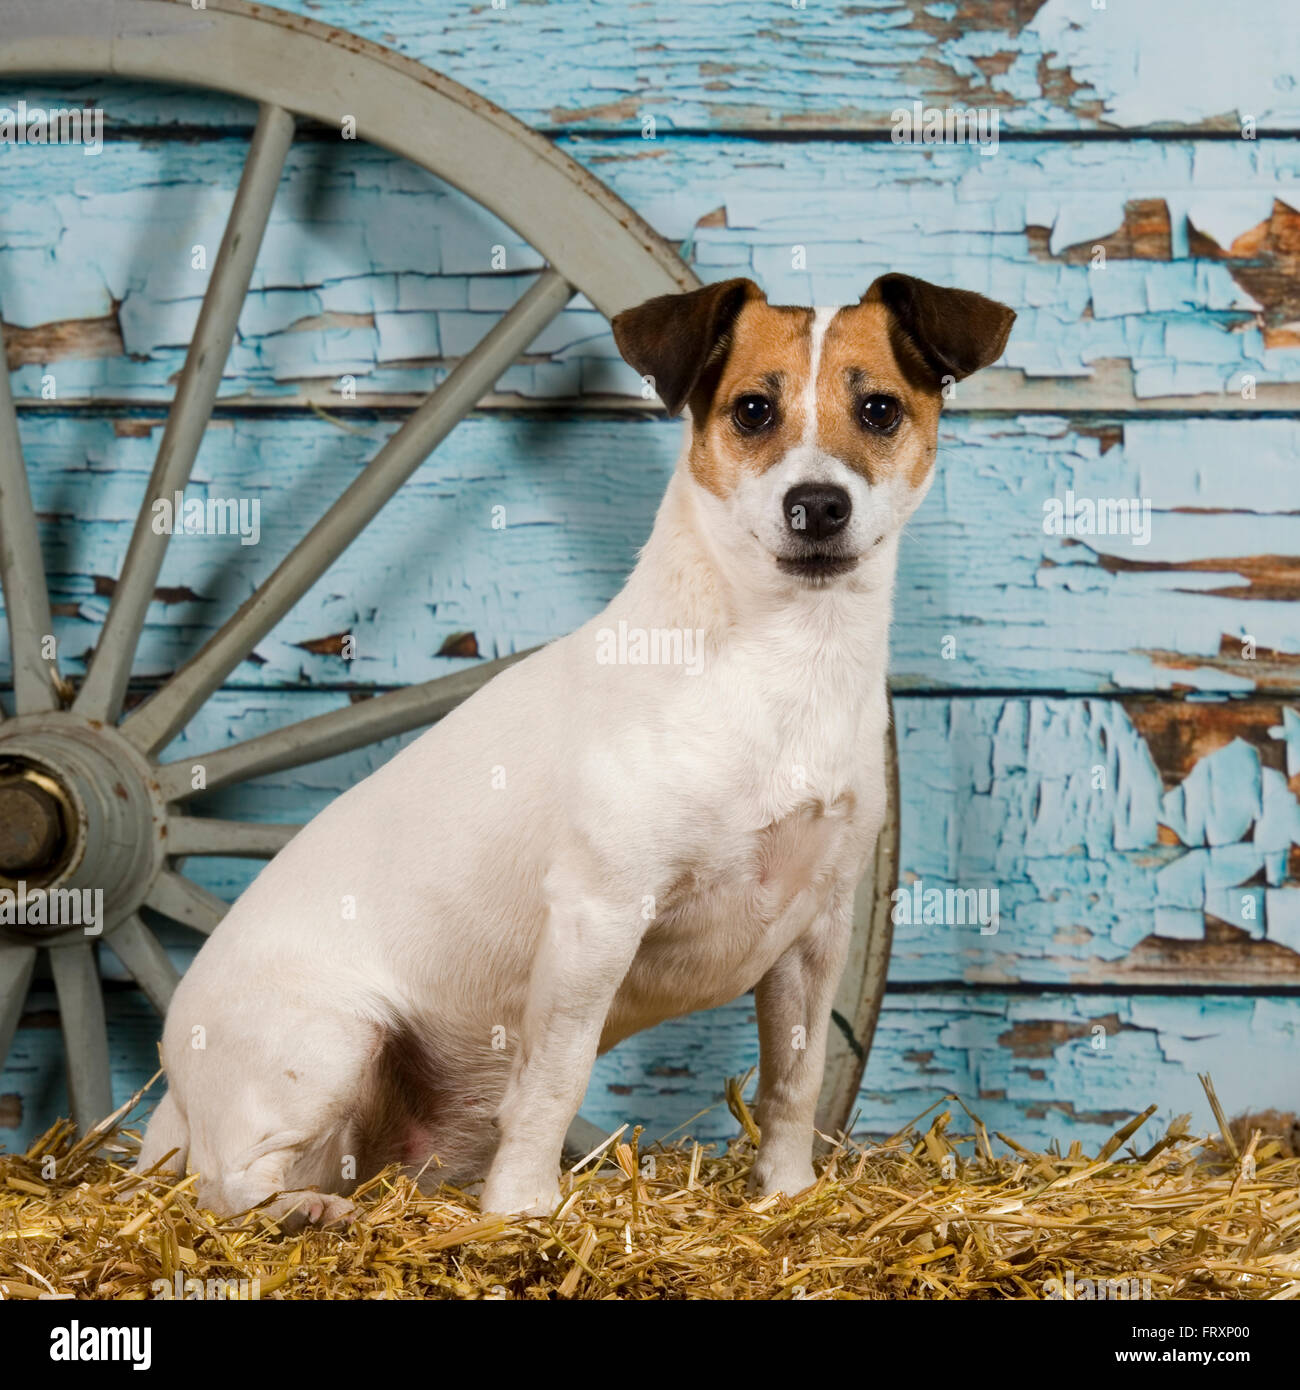 Working Jack Russell Terrier Stock Photos & Working Jack Russell ...